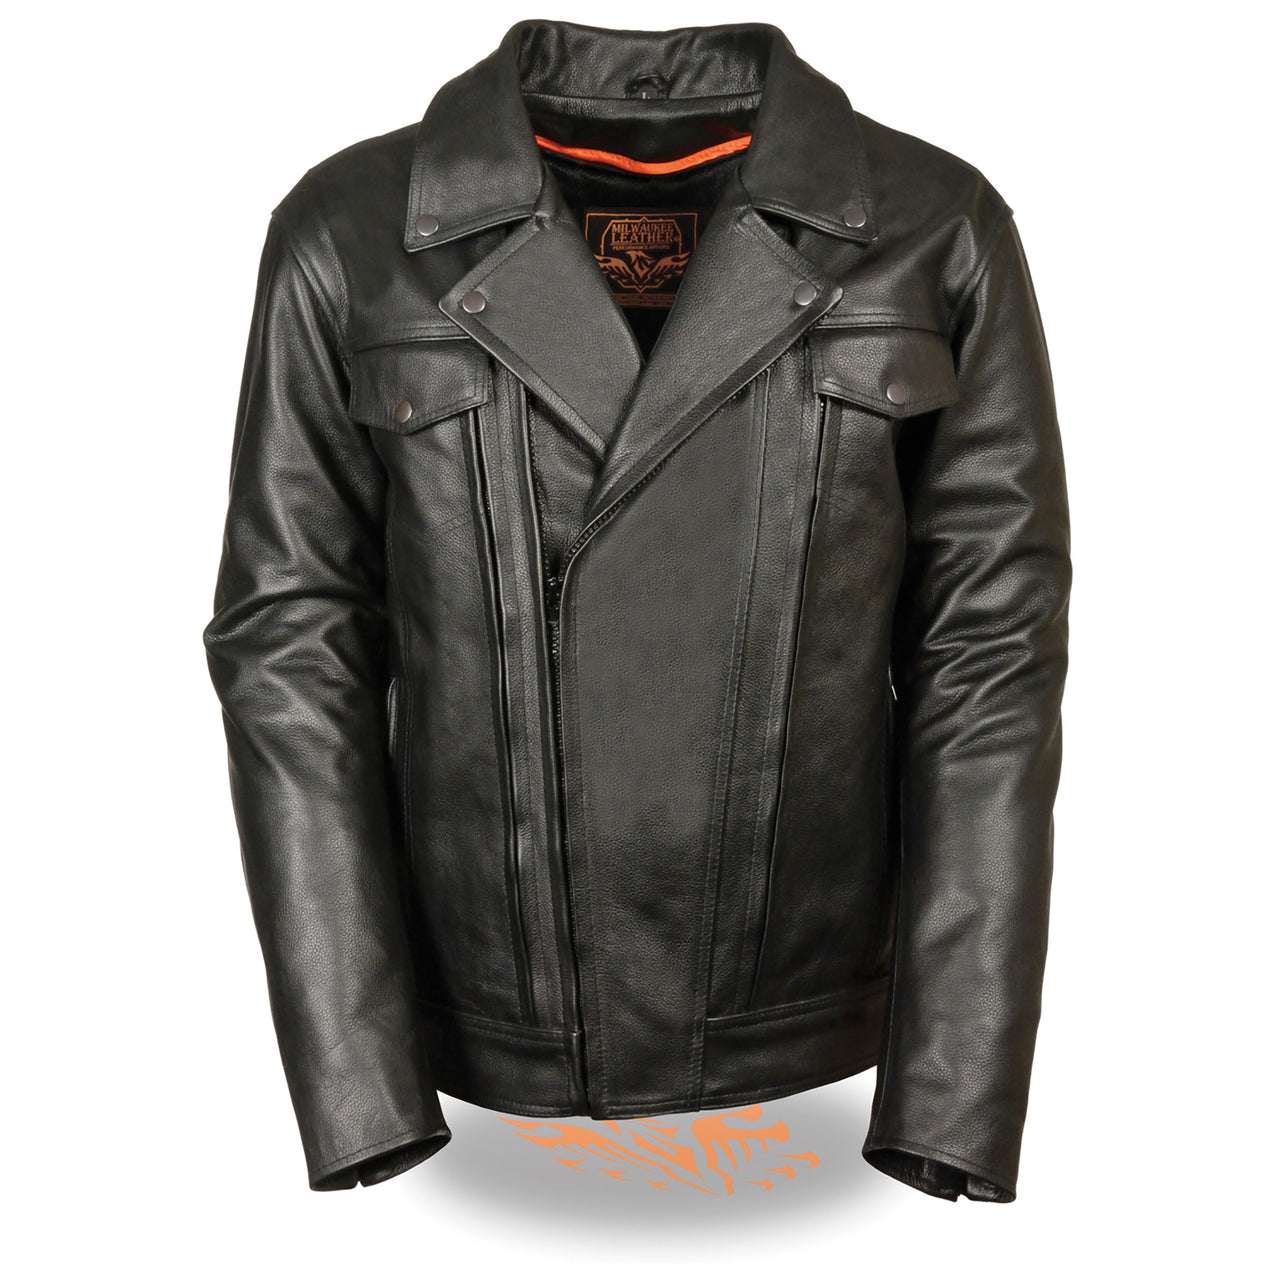 "Men's Tall"" Utility Pocket Vented Cruiser Jacket - HighwayLeather"